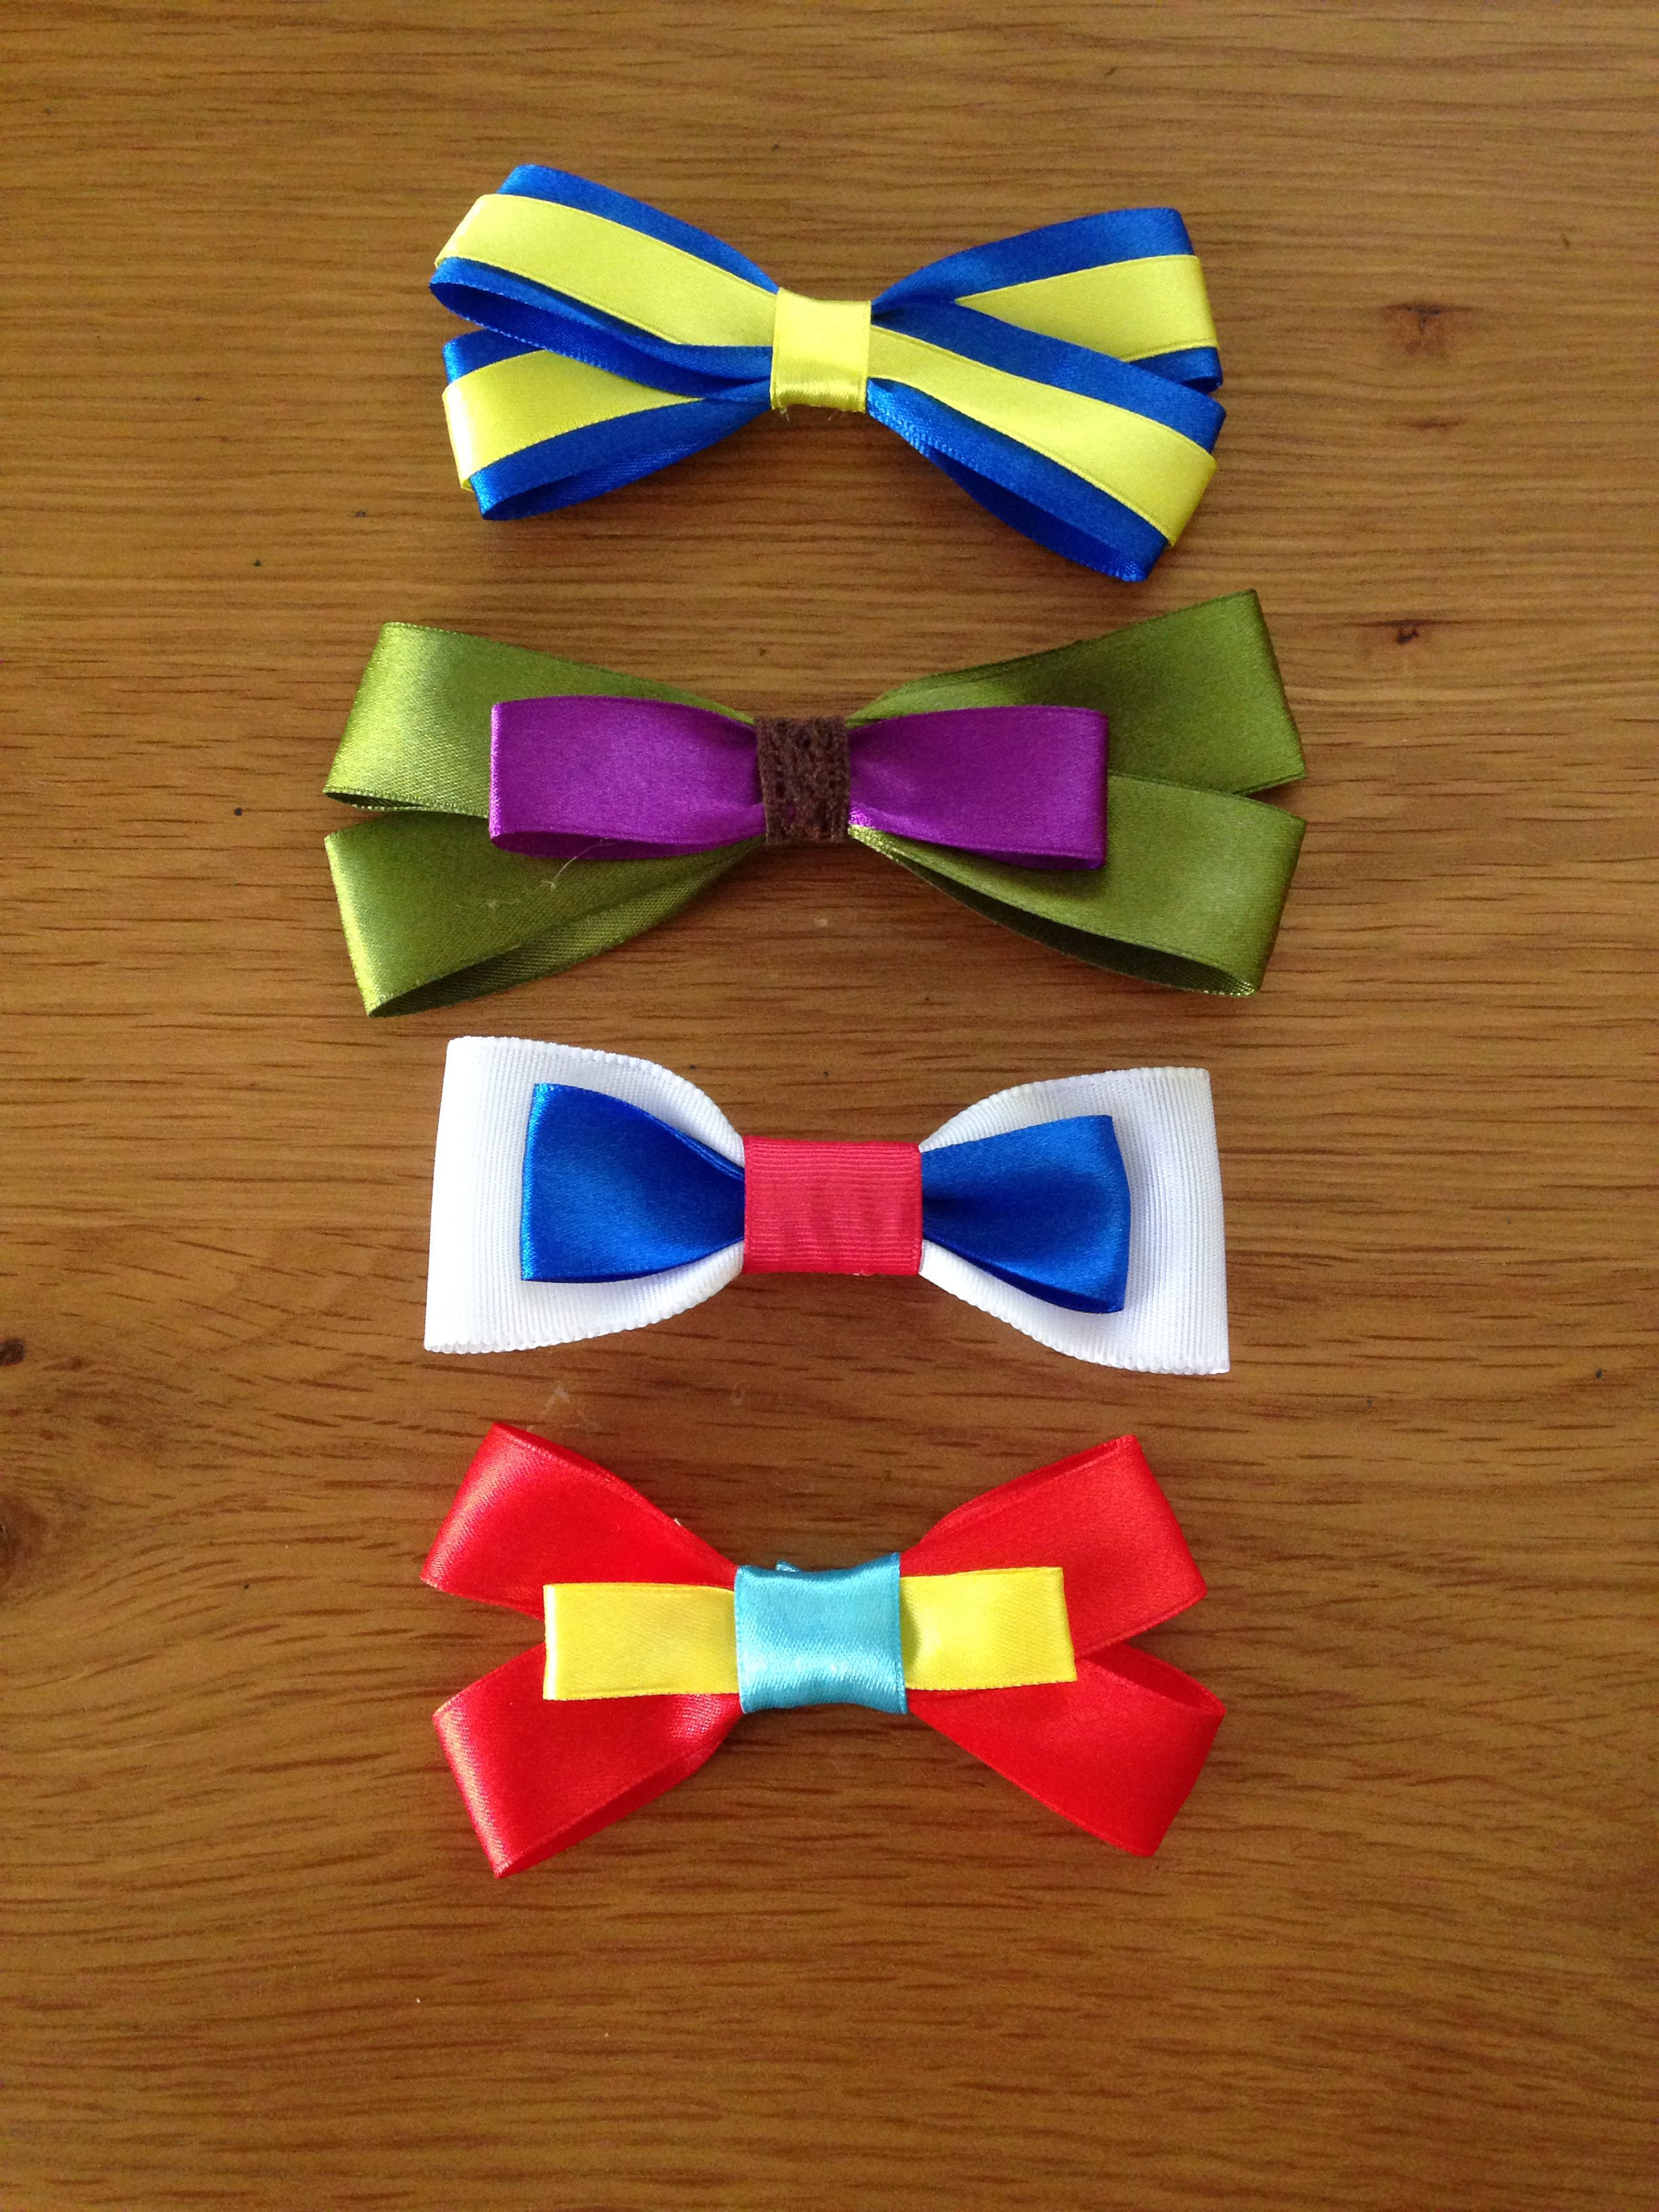 Marvel bows. X-men, Hulk, Captain America, Iron Man.